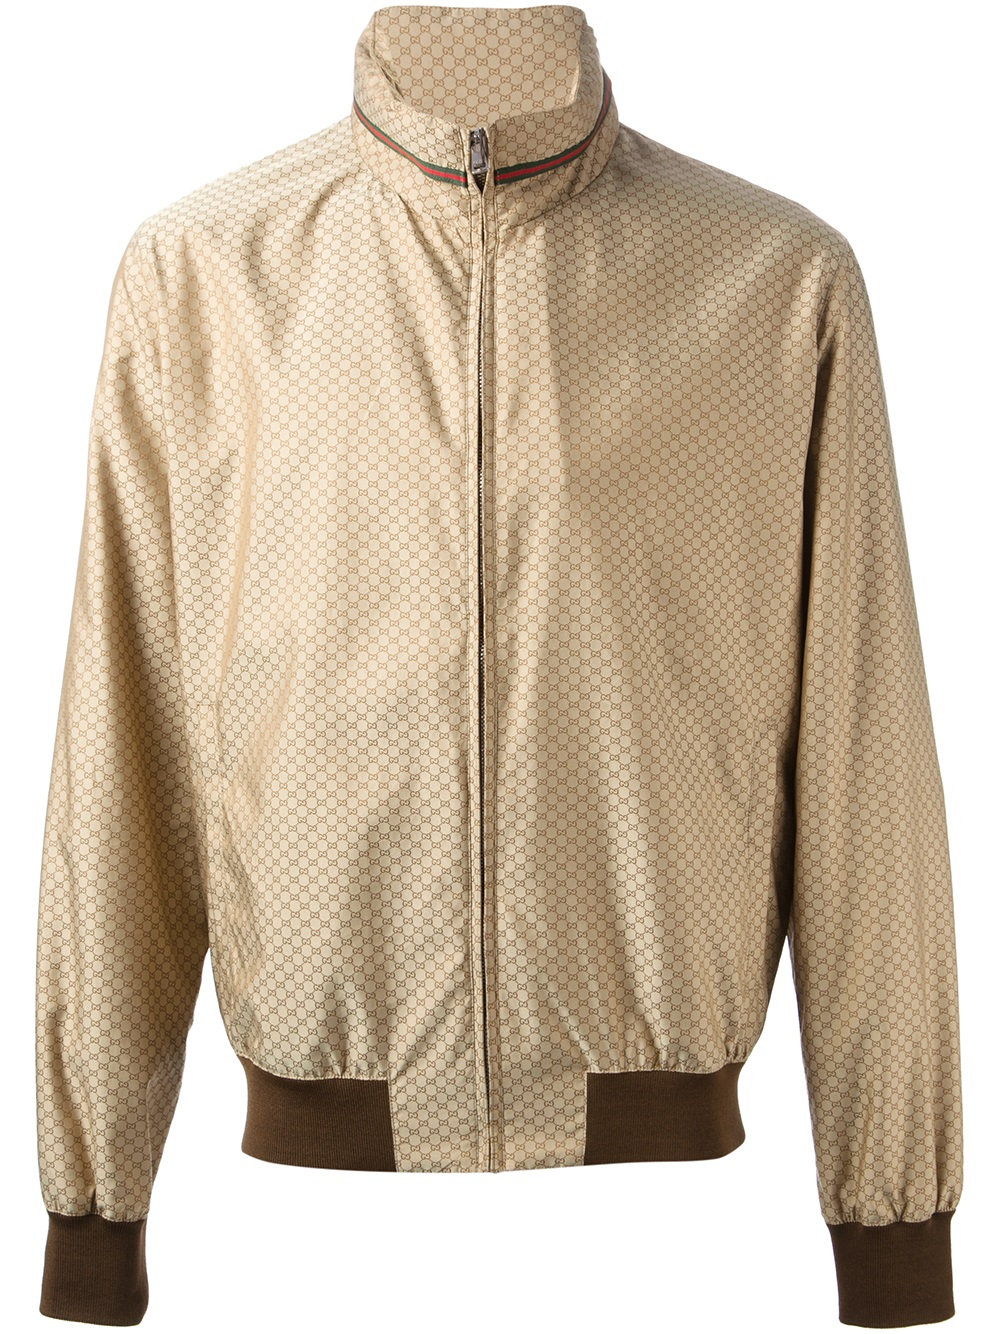 5975704173df Gucci Monogram Bomber Jacket in Brown for Men - Lyst